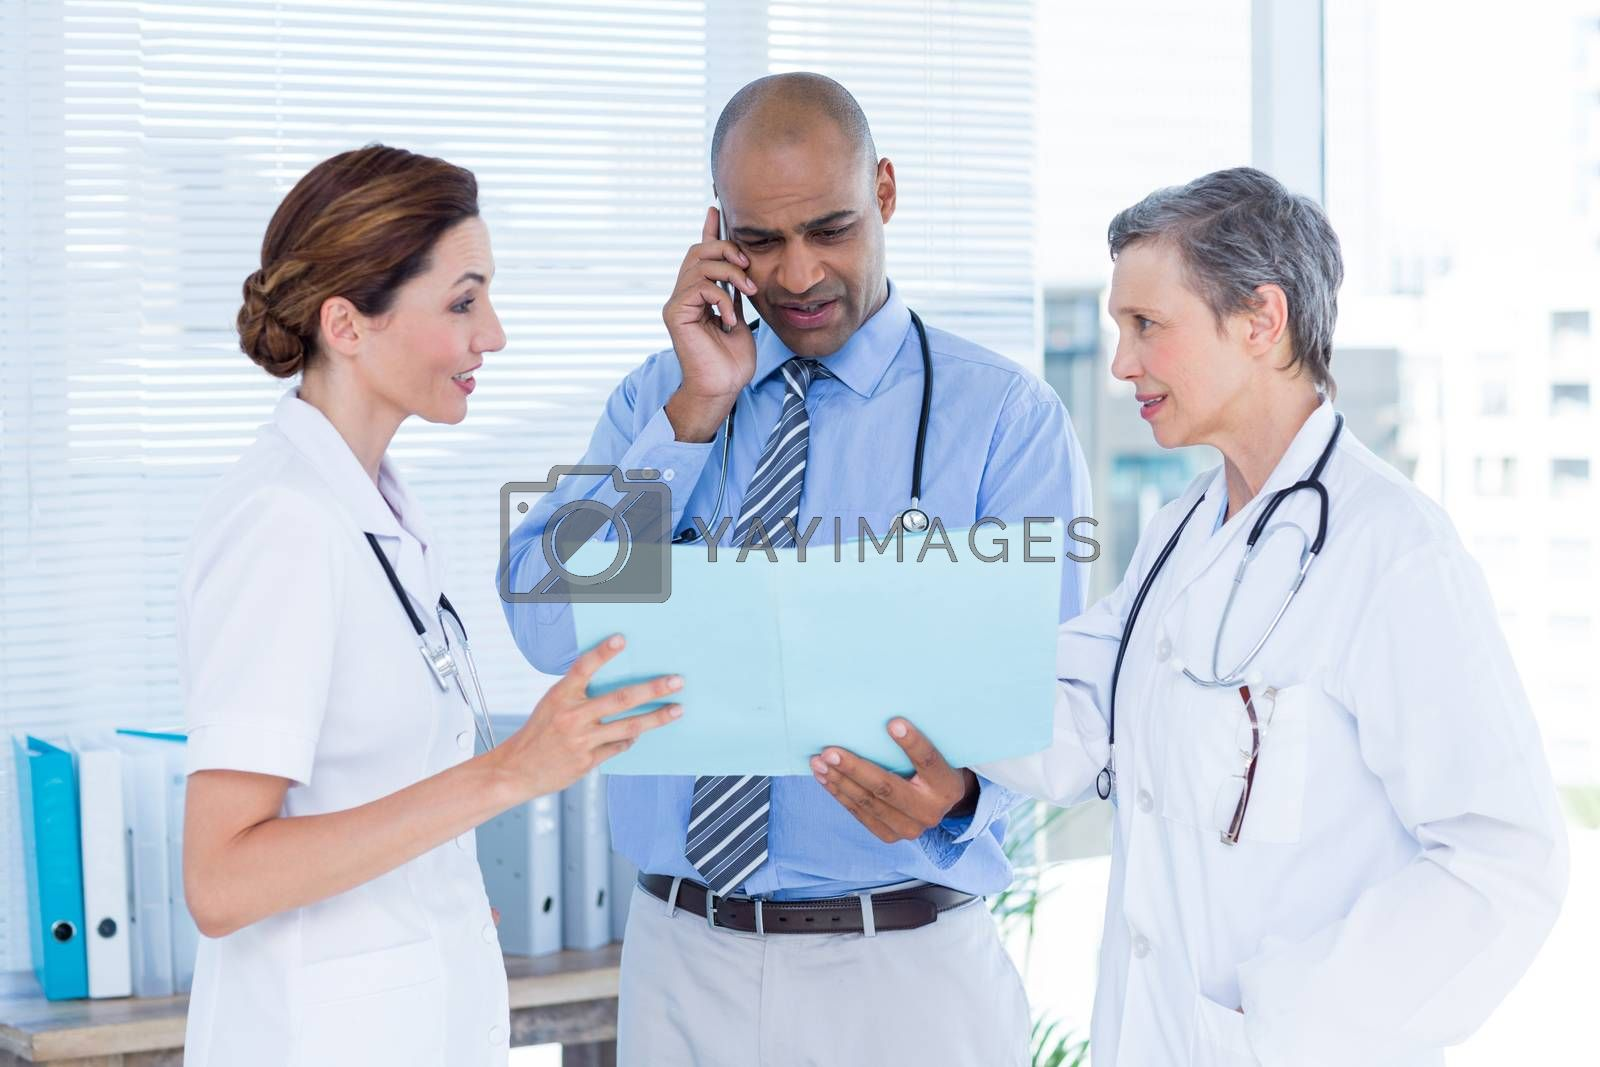 Royalty free image of Concentrated doctor showing file to his colleagues while calling by Wavebreakmedia